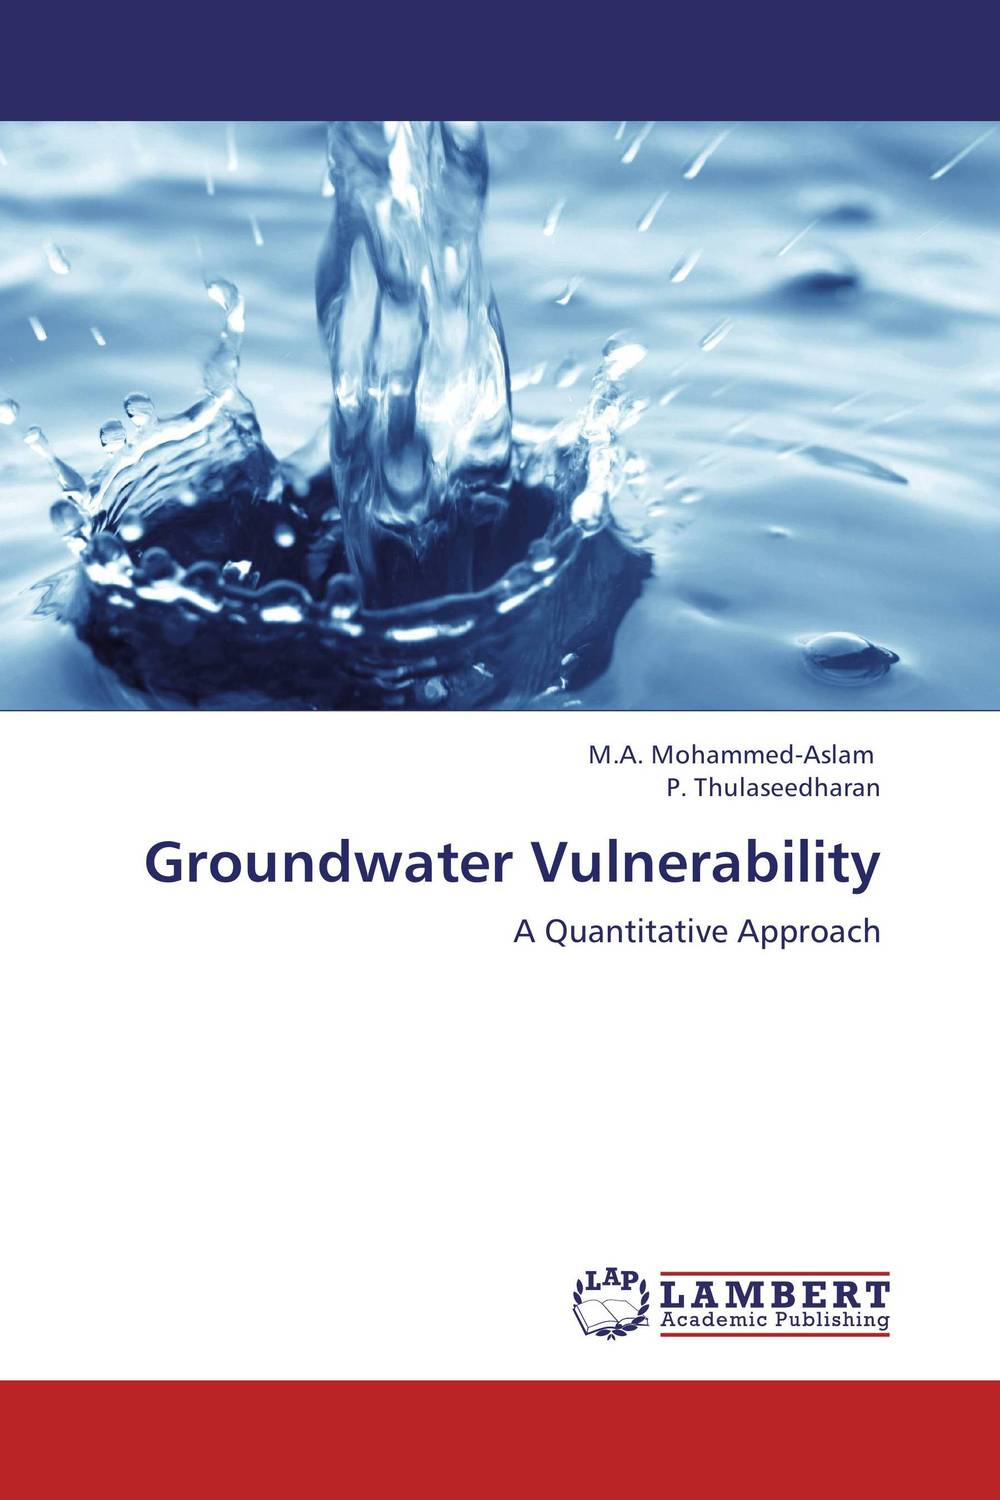 Groundwater Vulnerability arcade ndoricimpa inflation output growth and their uncertainties in south africa empirical evidence from an asymmetric multivariate garch m model